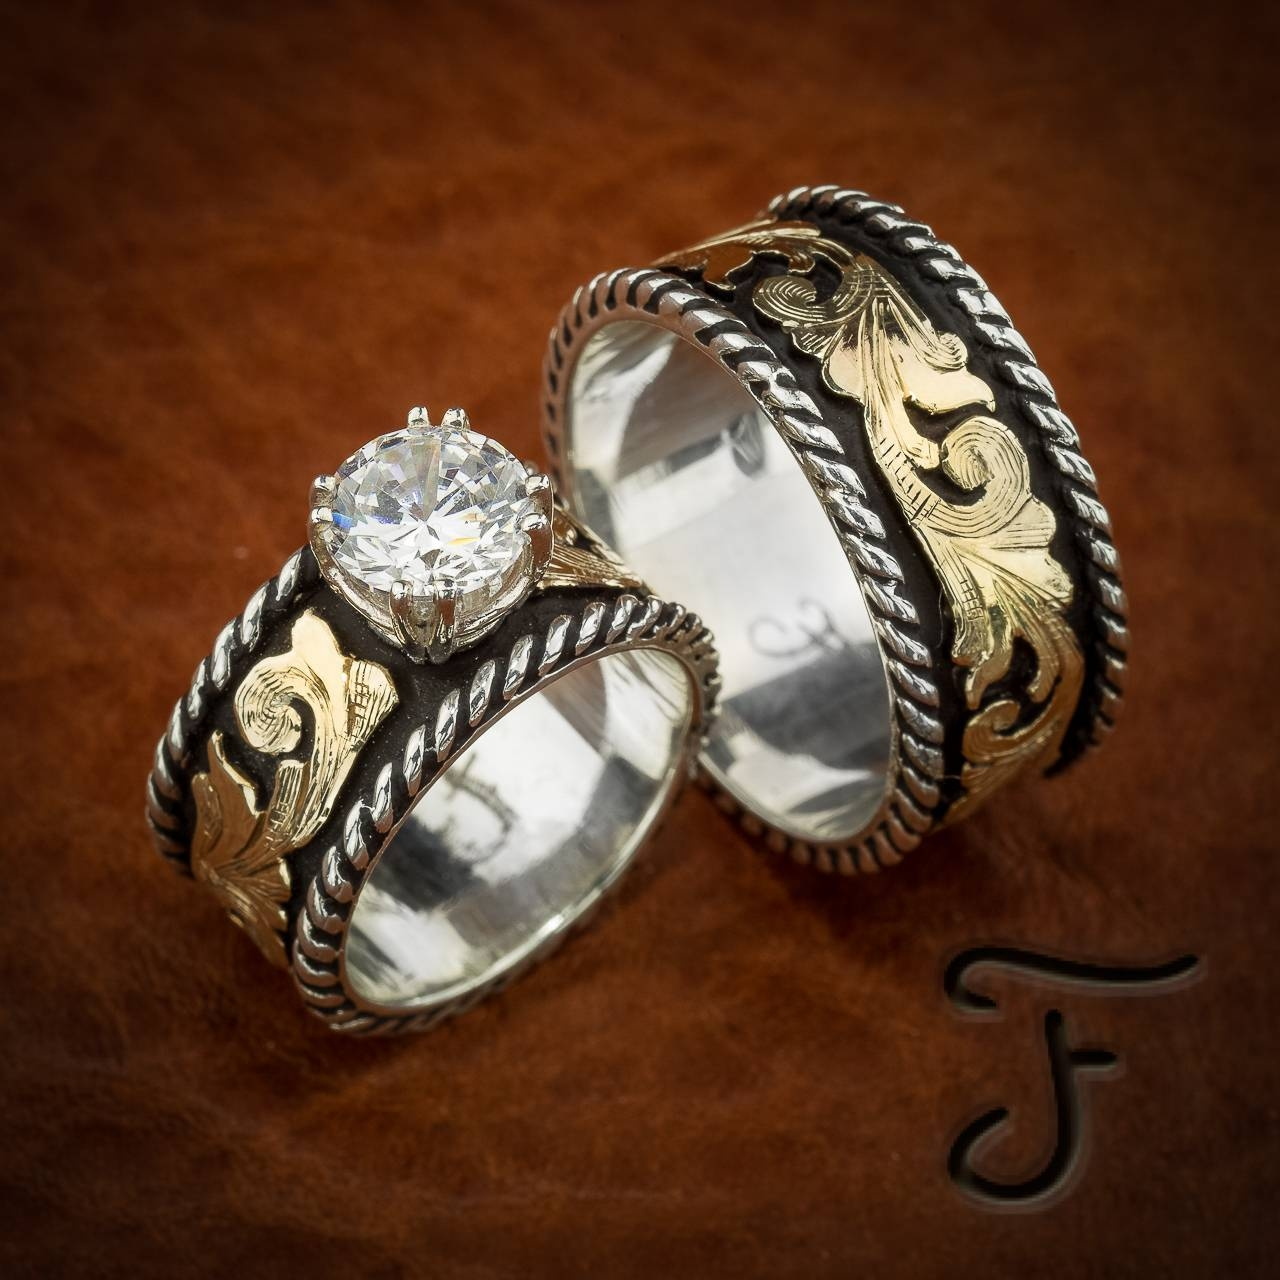 15 Collection of Cowboy Wedding Bands